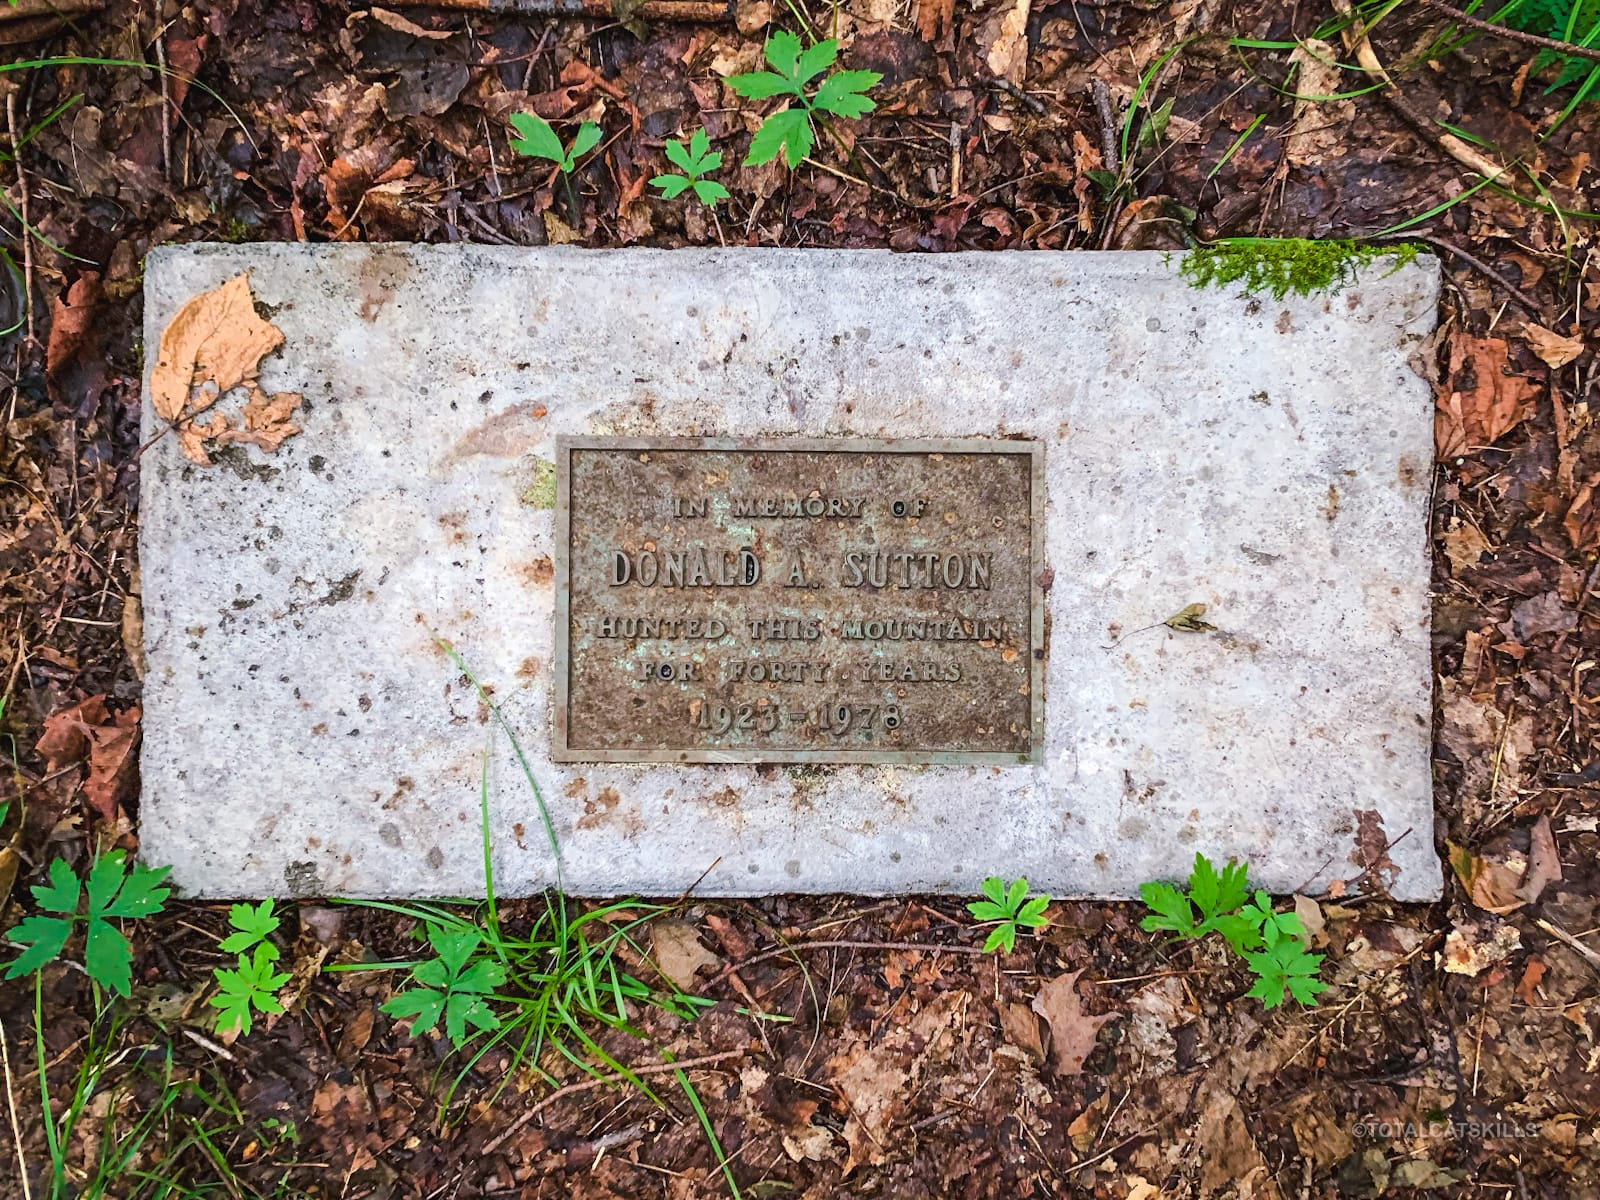 Donald A Sutton memorial plaque on forest floor